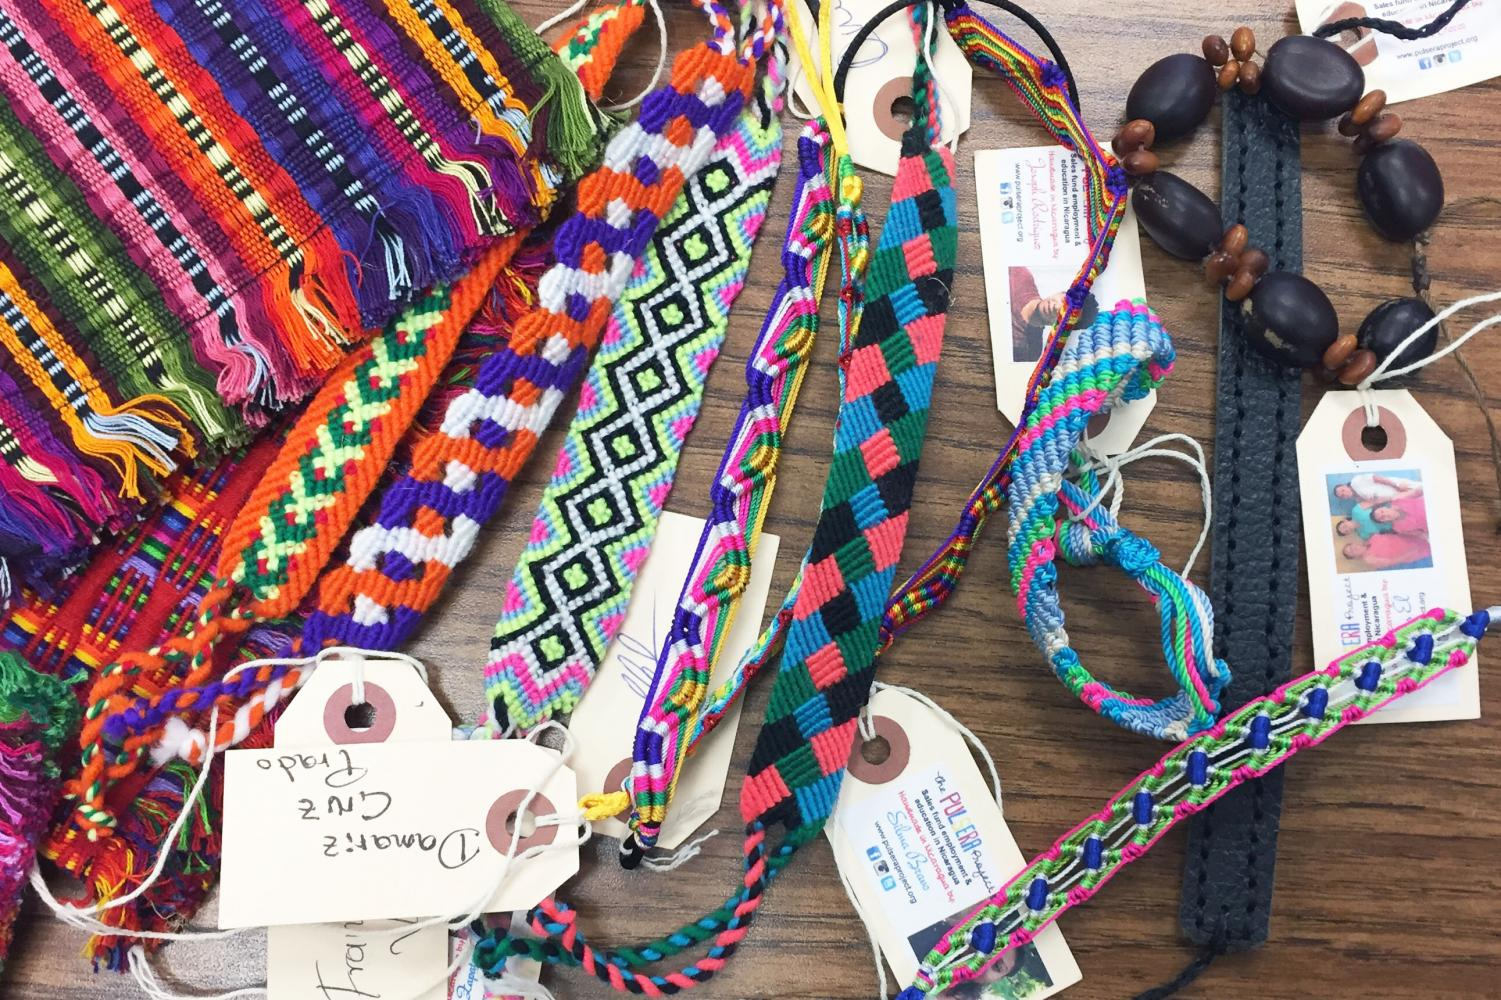 Through the Pulsera Project, the Spanish Honor Society is helping support artists in Central America by selling colorful, handmade bracelets and purses.